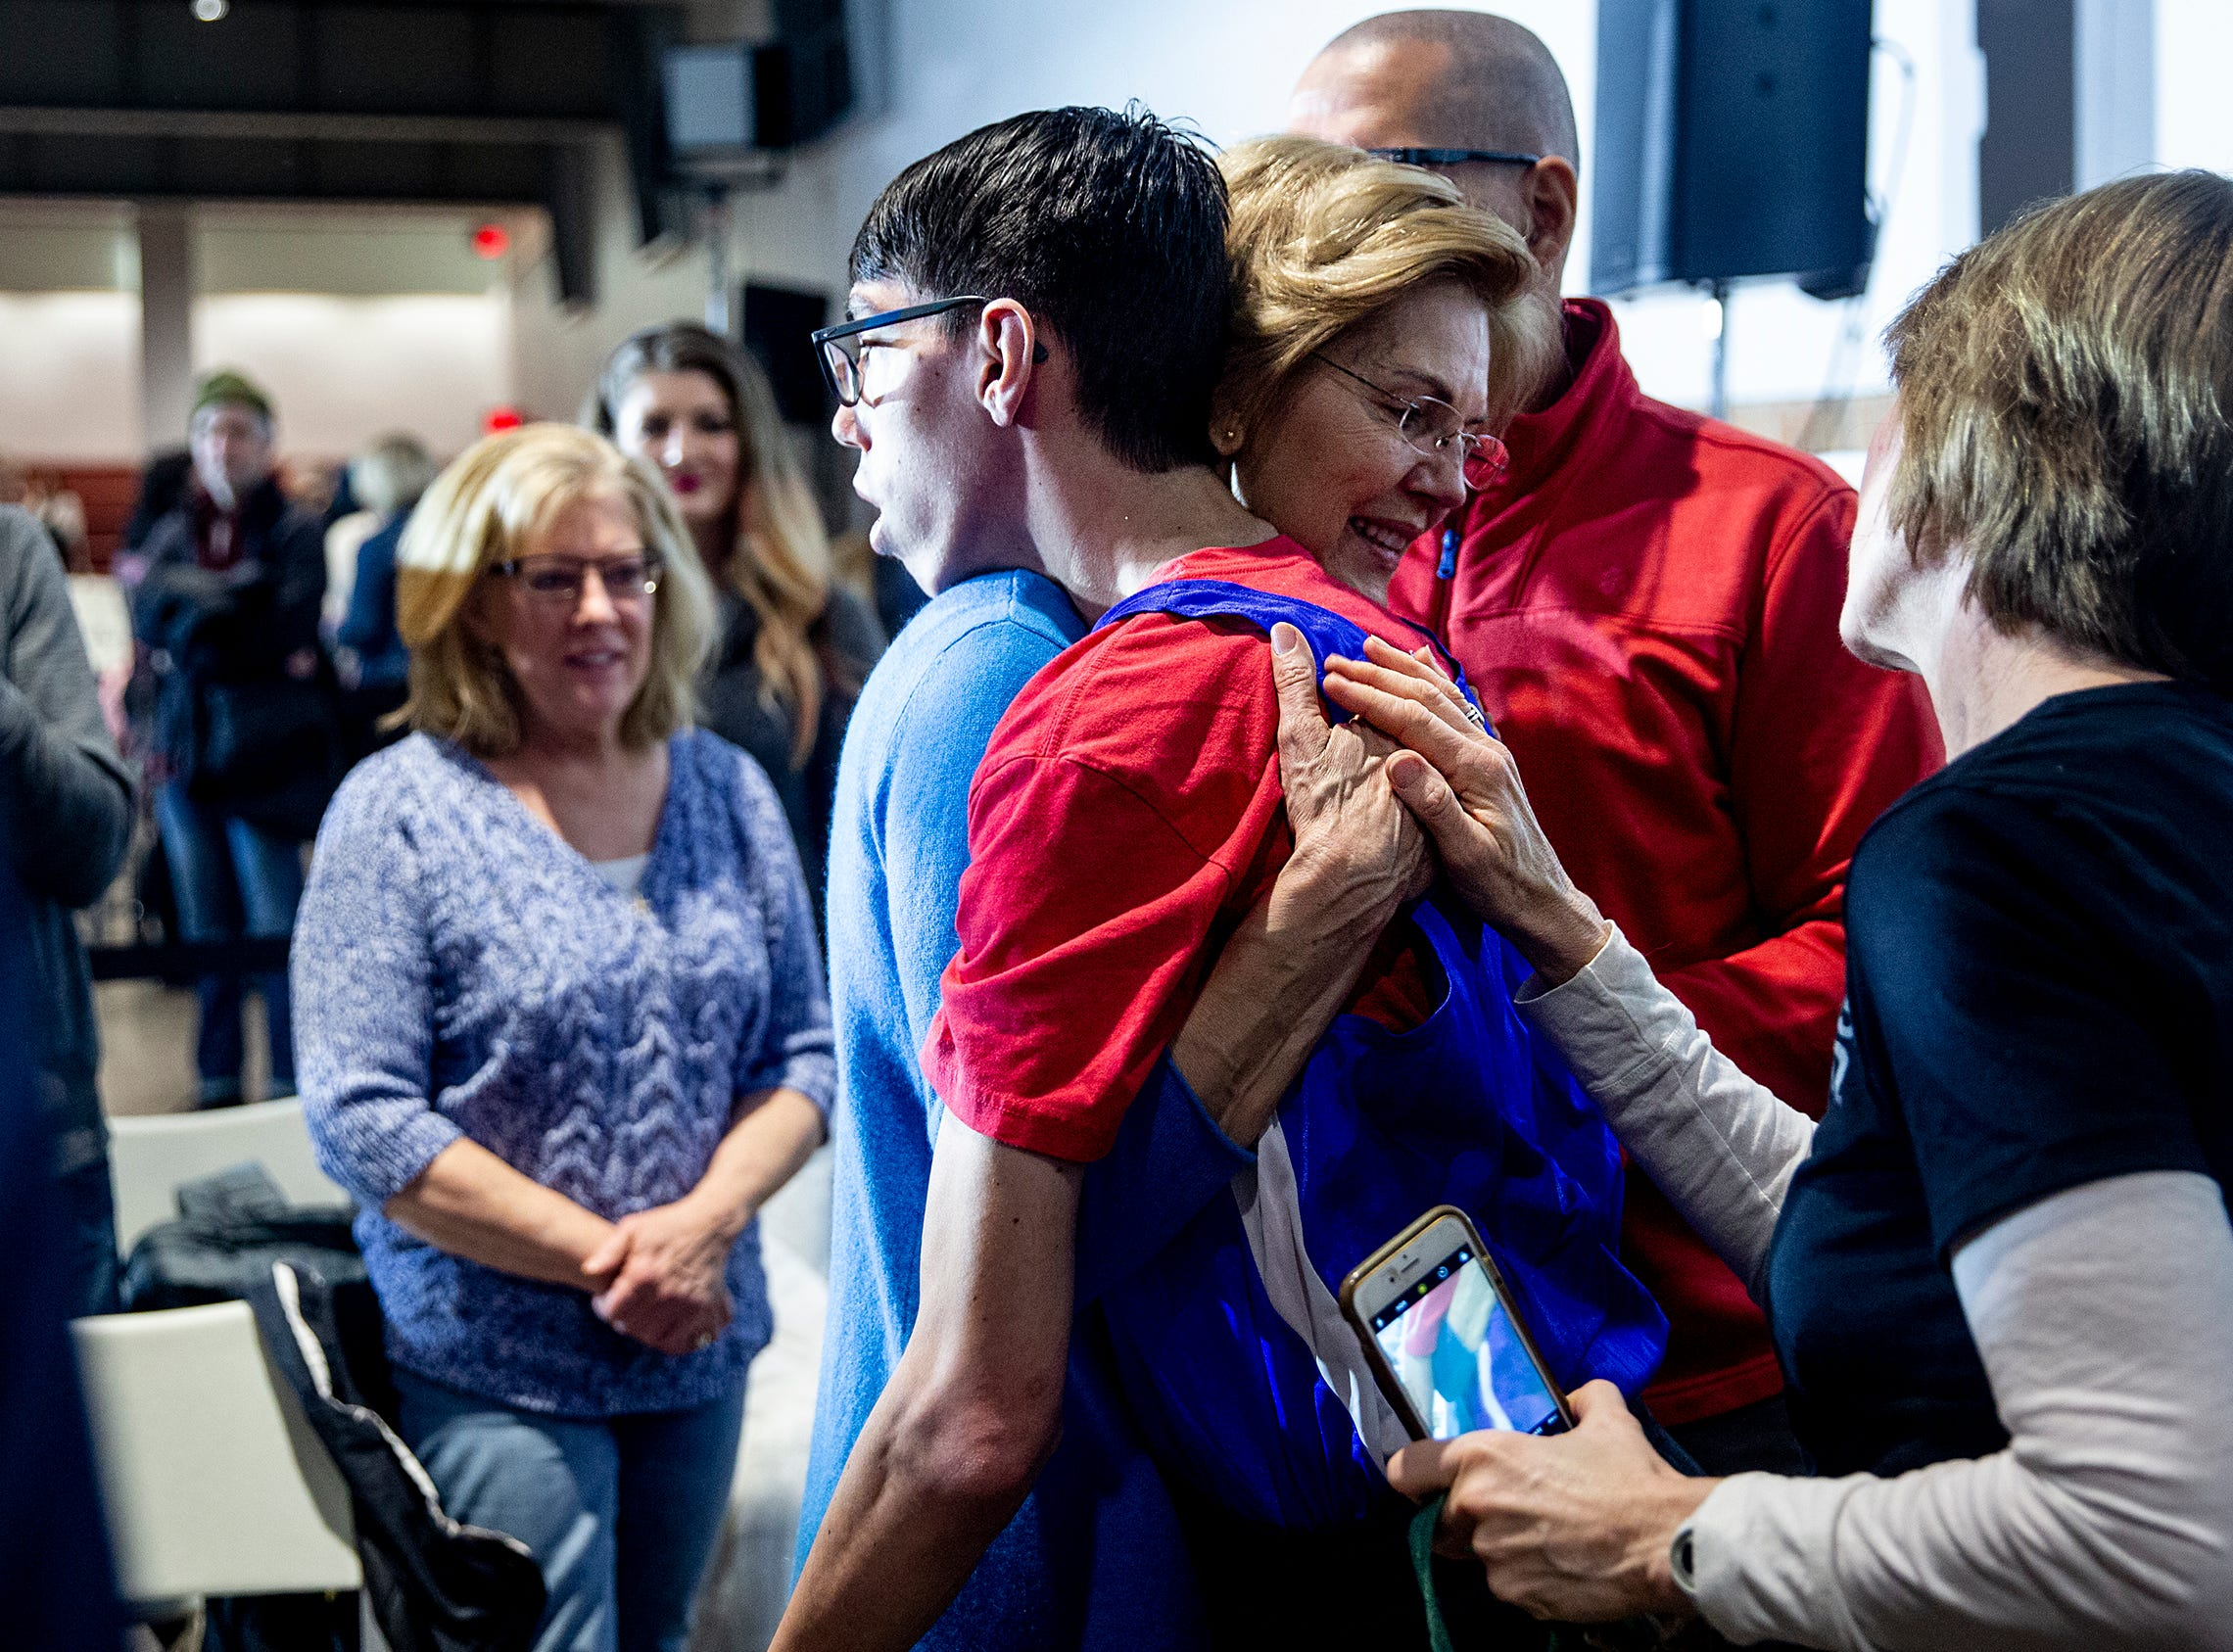 Sen. Elizabeth Warren, D-Mass, hugs a man attending her campaign stop on Sunday, Feb. 10, 2019, in the Veterans Memorial Building in downtown Cedar Rapids.